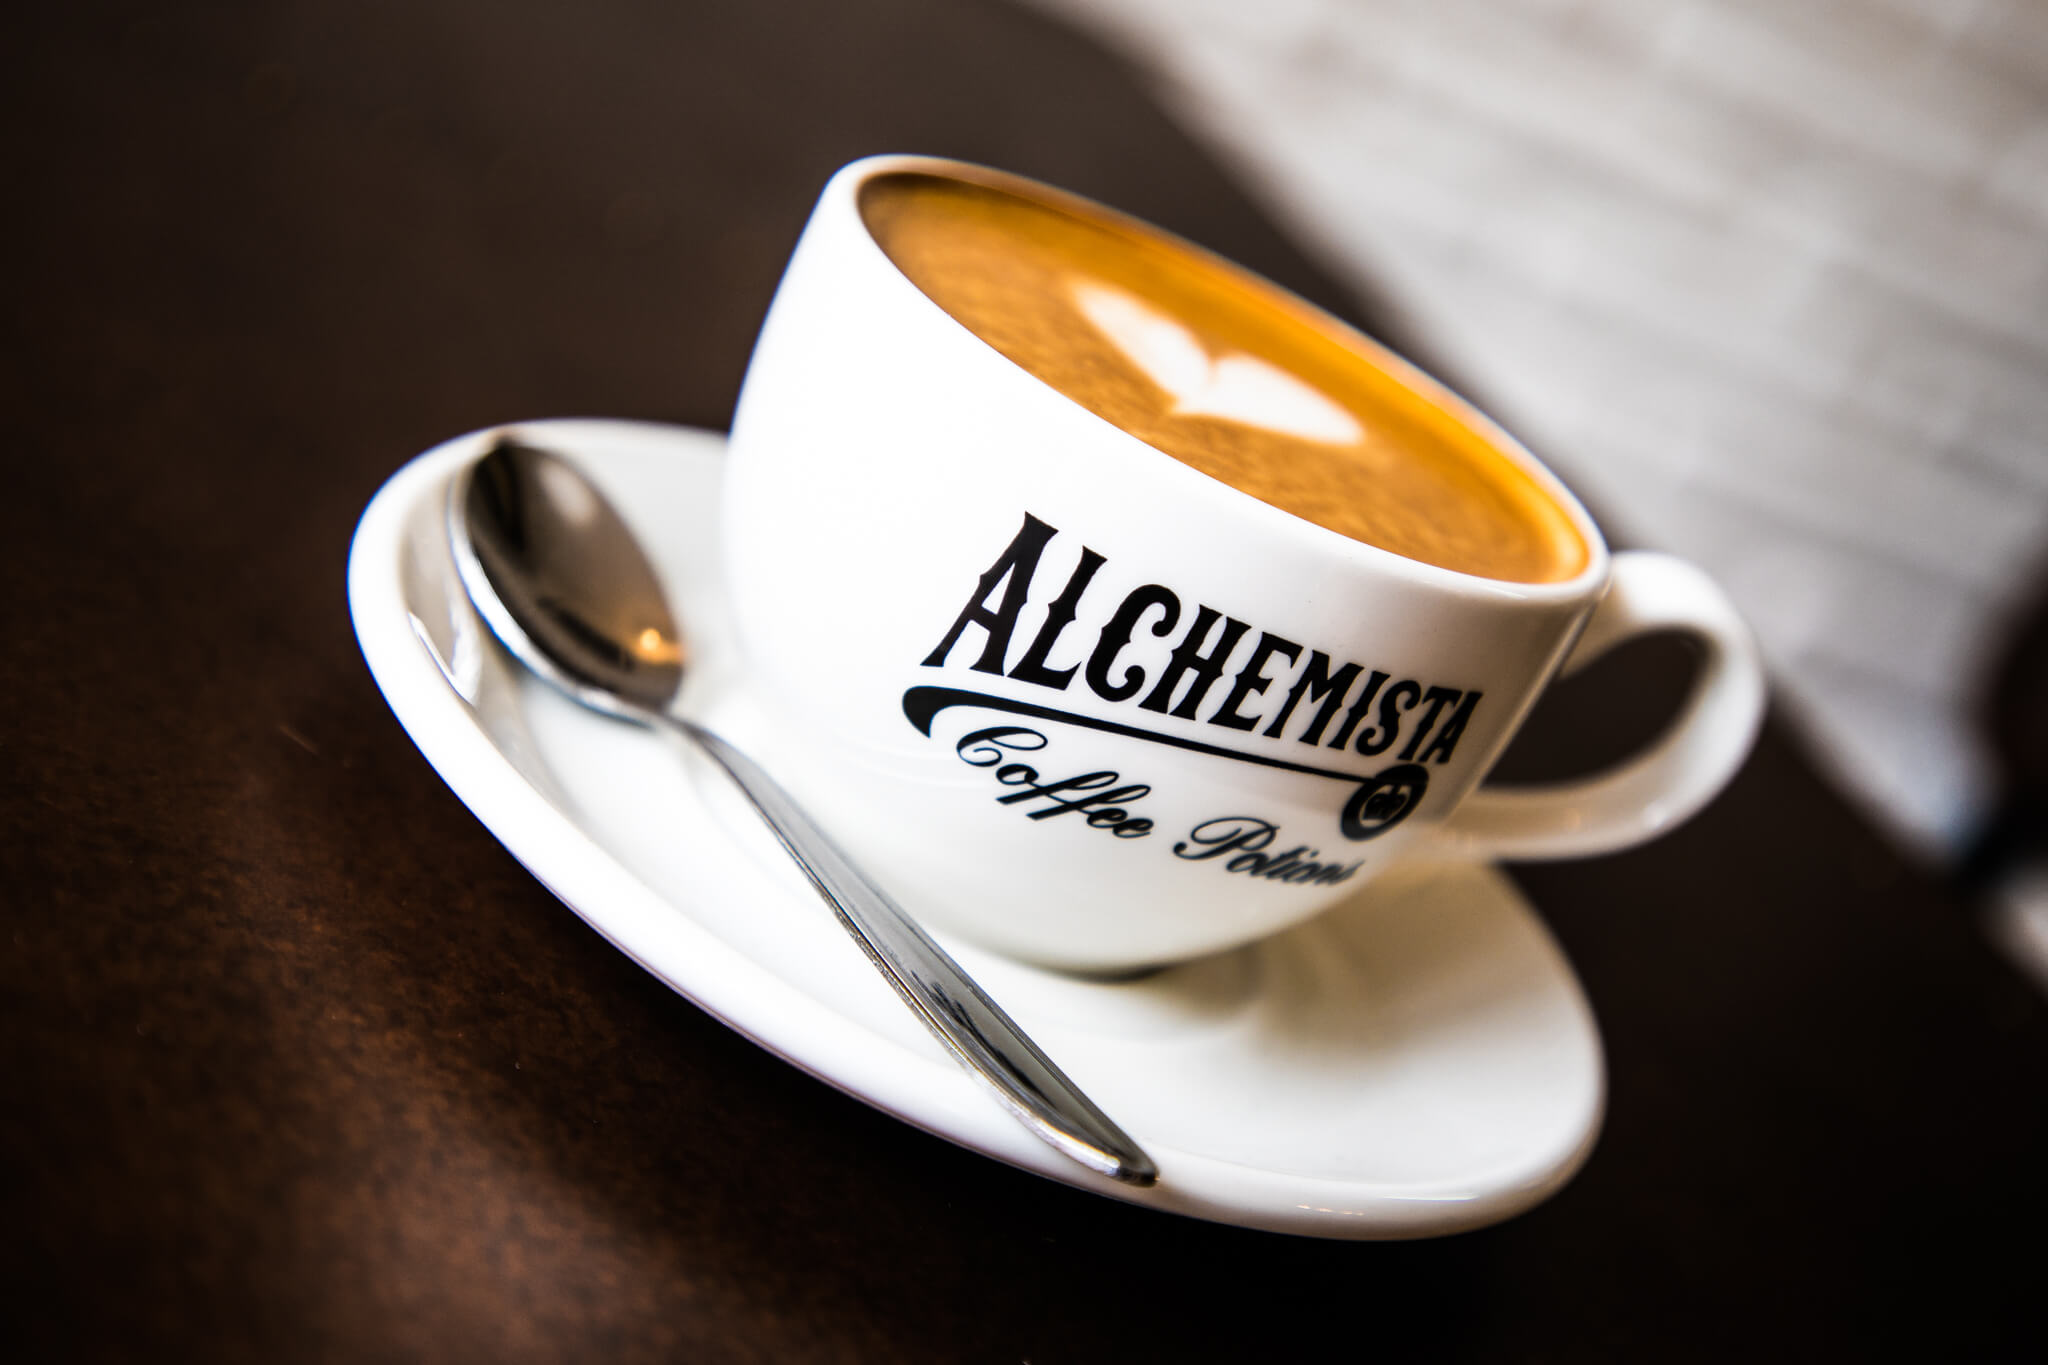 Alchemista Coffee Cup and Spoon